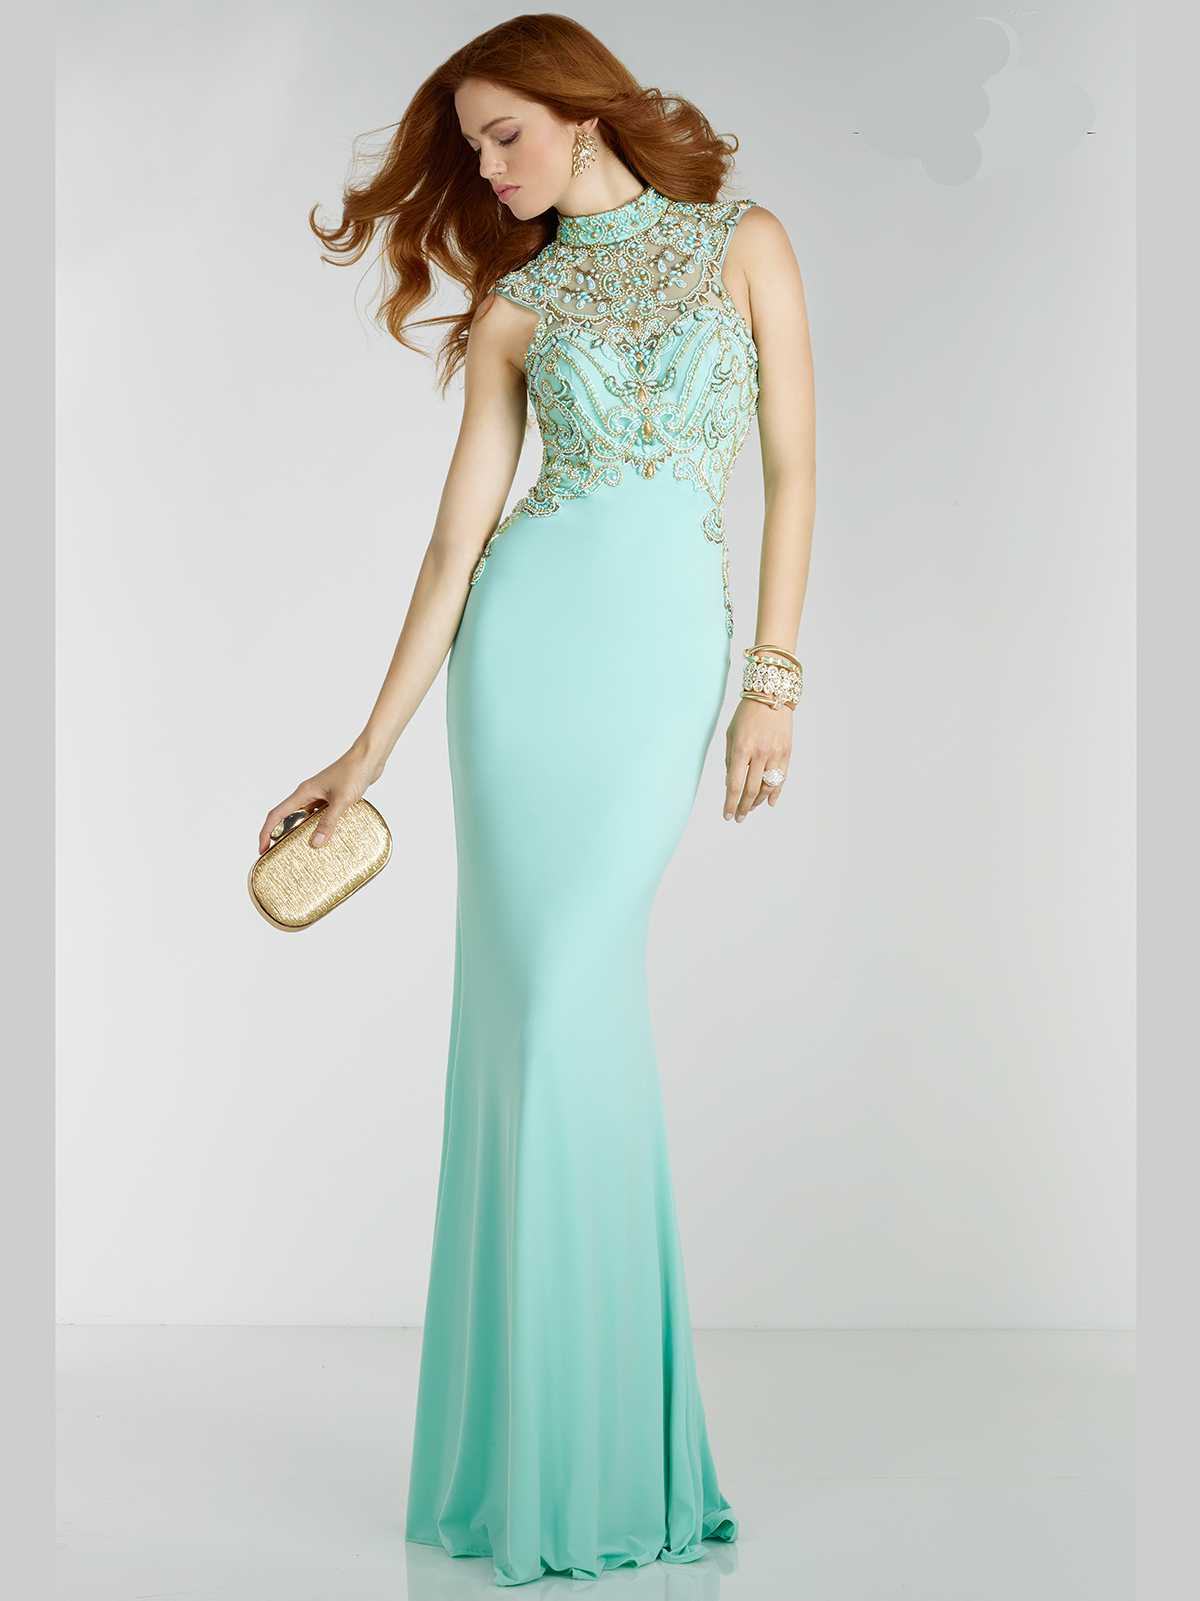 Old Fashioned 20s Inspired Prom Dresses Festooning - Womens Dresses ...